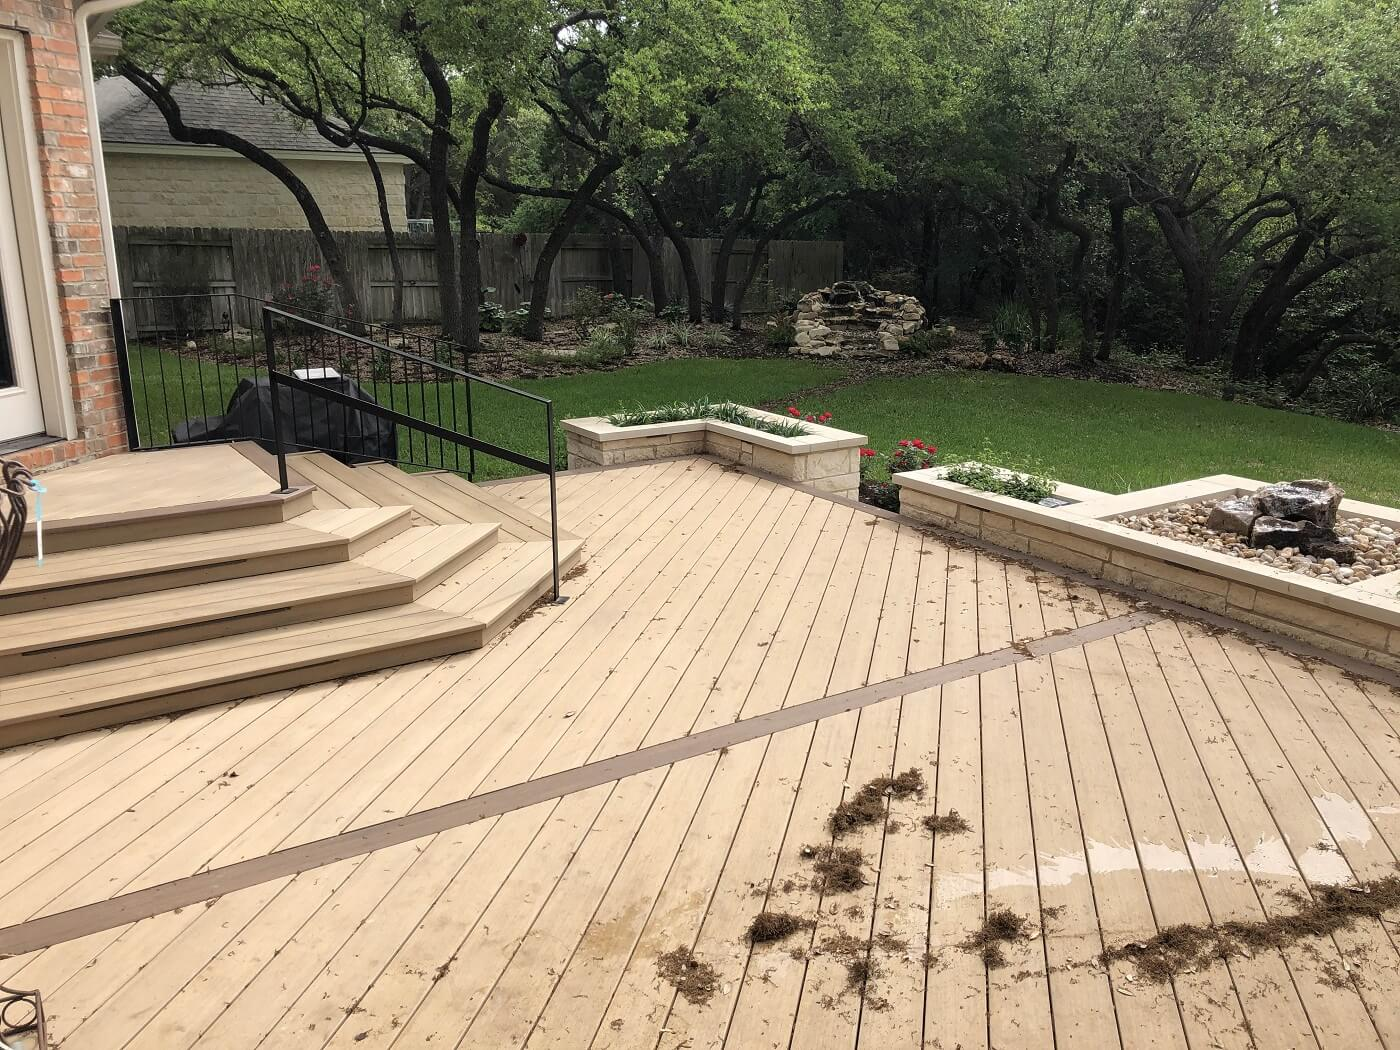 Backyard deck with lighting and railing